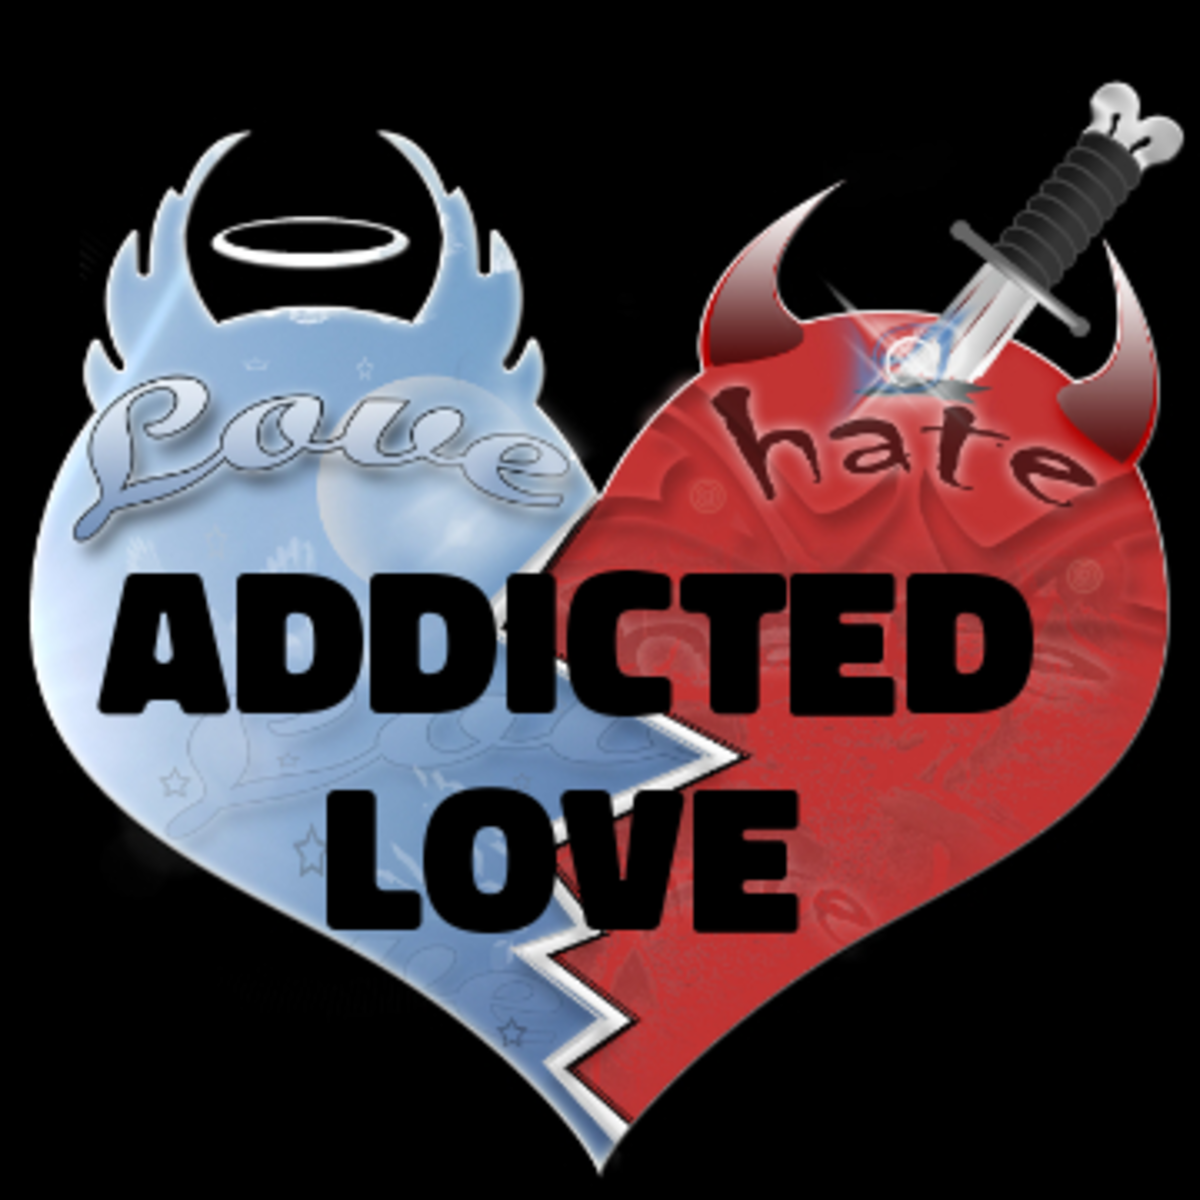 Poem: Addicted Love